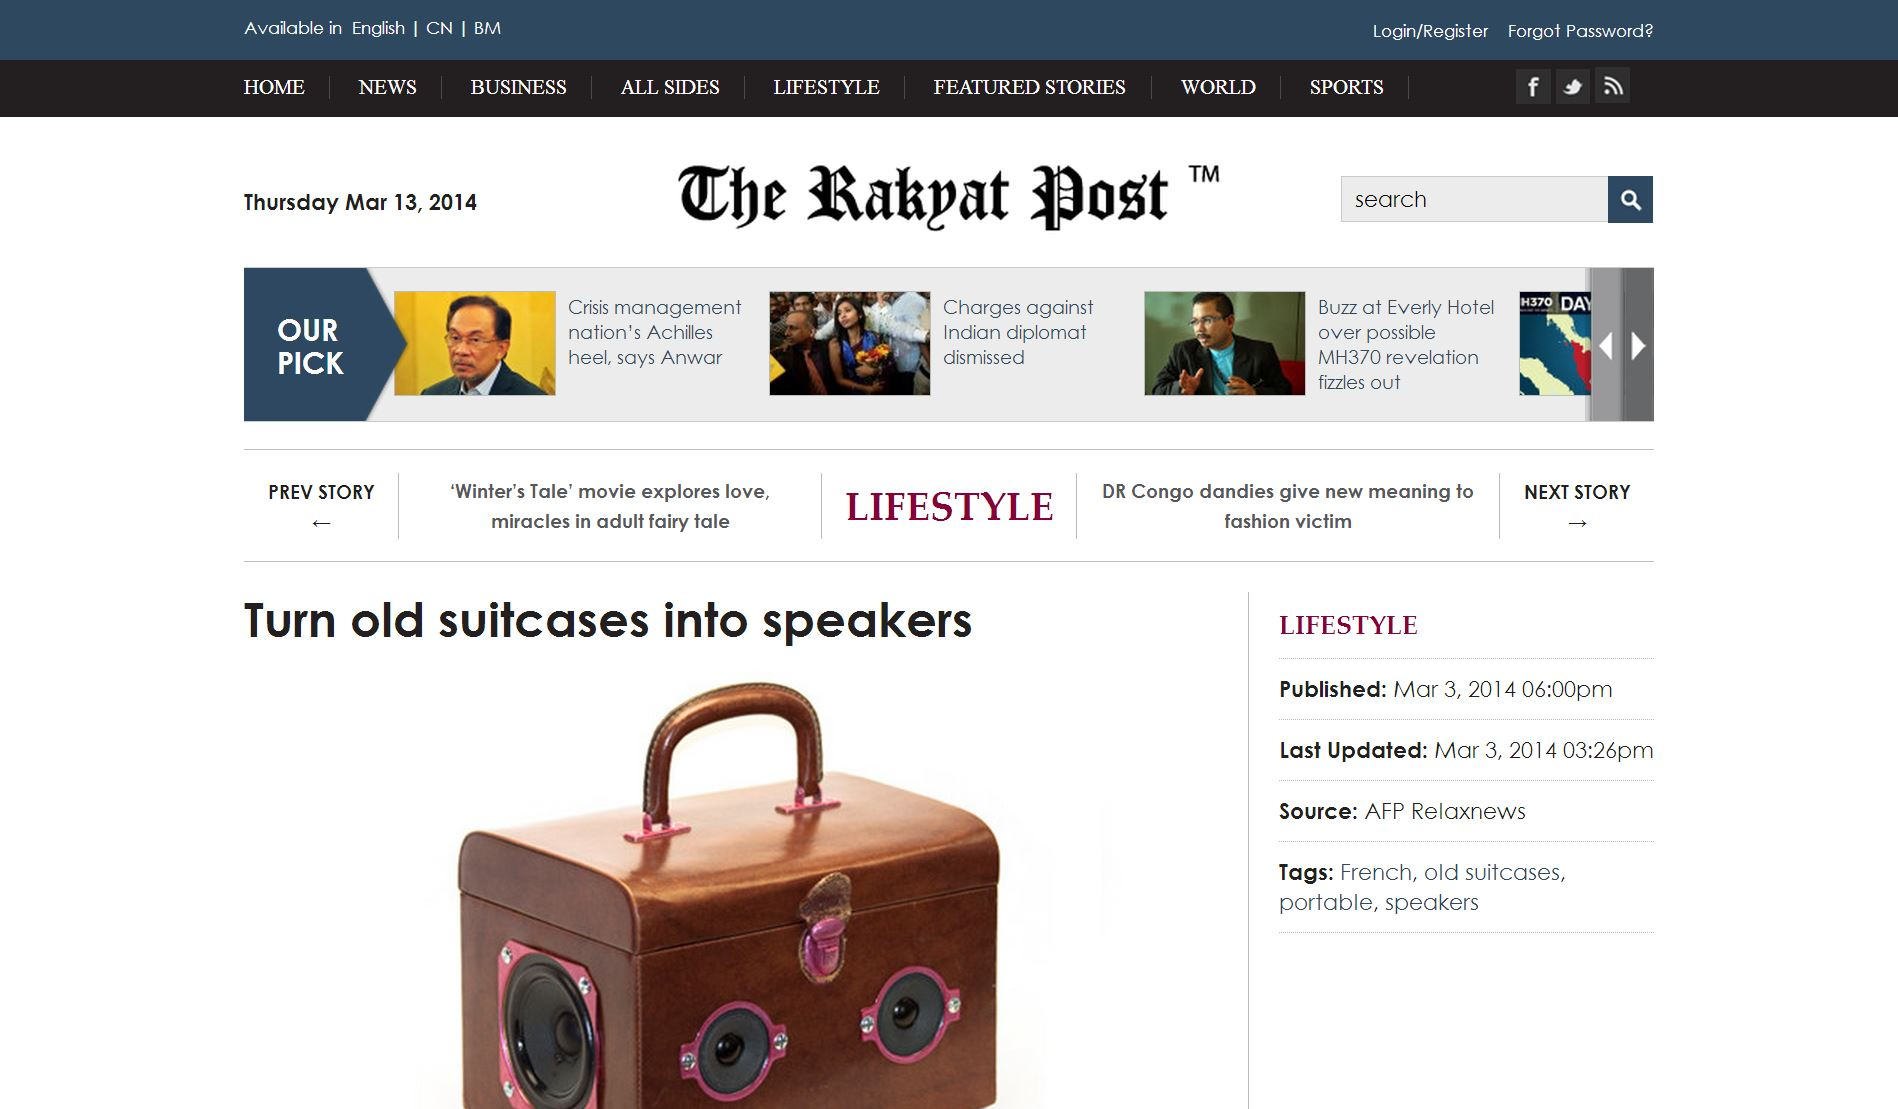 valise-musicale_article-blog_the rakyat post